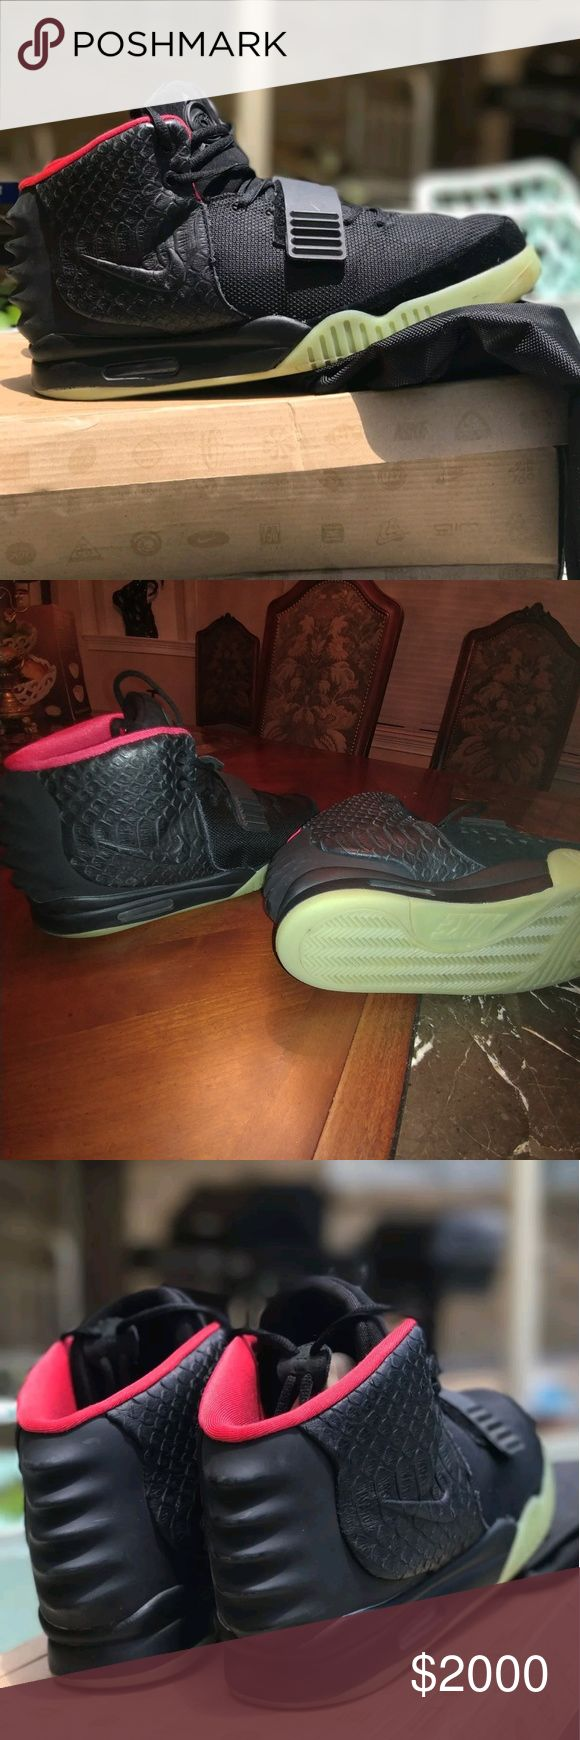 Nike Air Yeezy 2 Solar Red Size 11 Authentic Size 11  100% authentic Shoes Sneakers